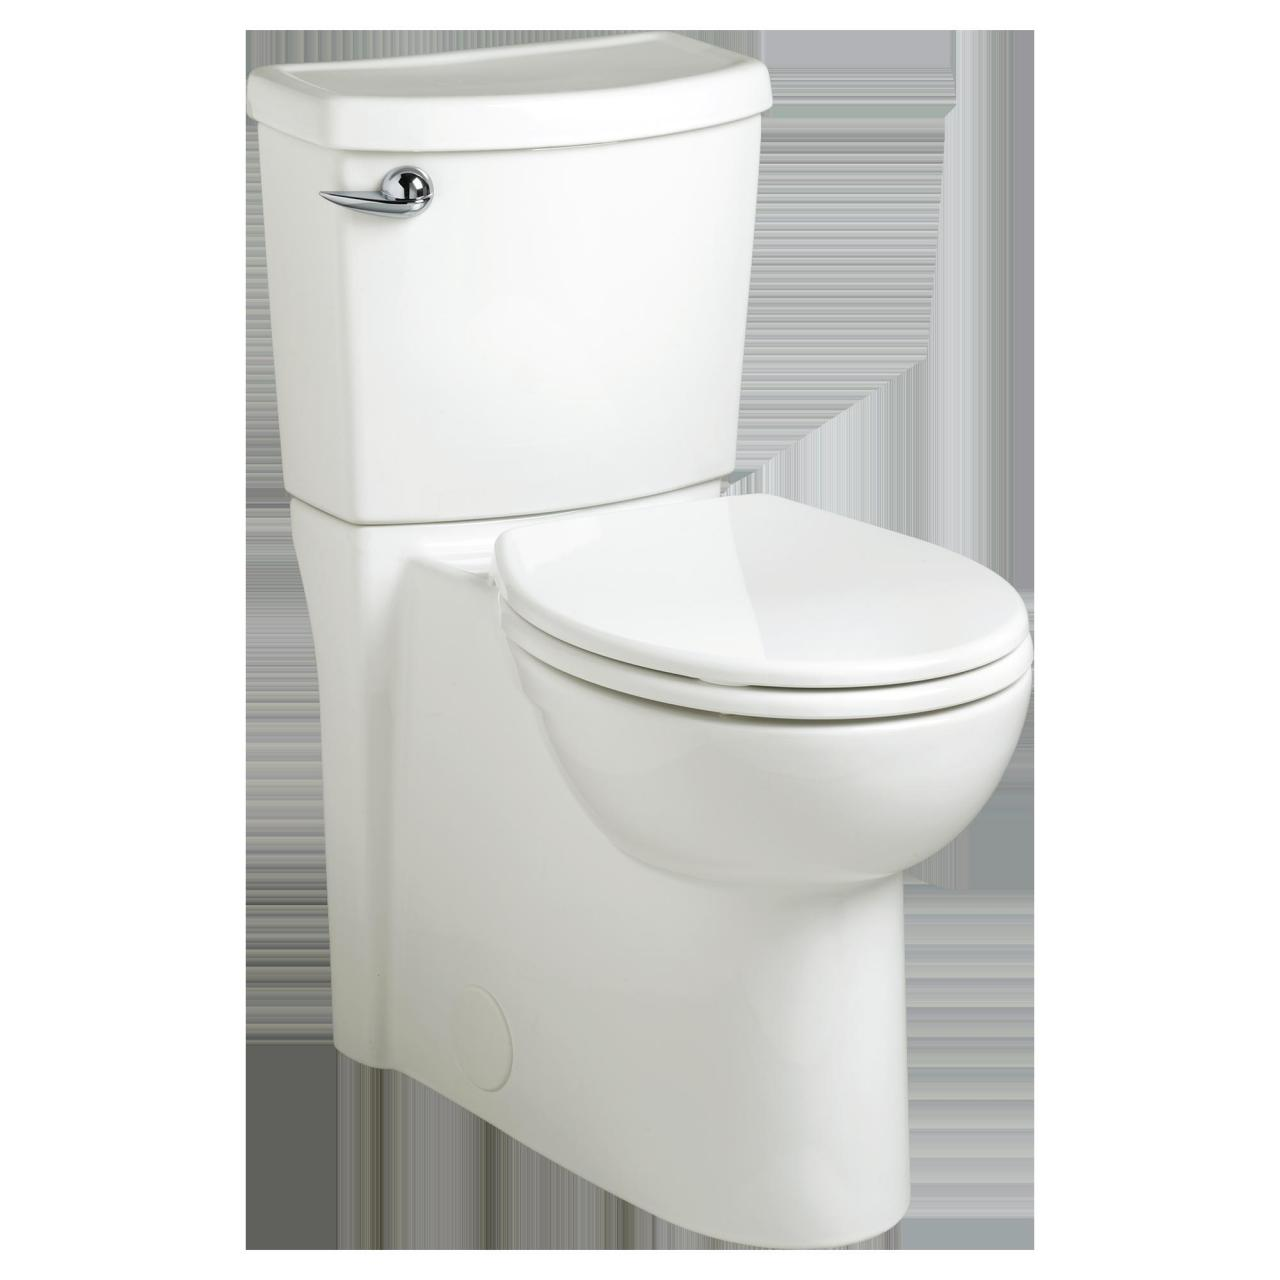 Best Fascinating Concealed Trapway Toilets In Cadet 3 FloWise Toilet 1 28 GPF American Standard wholesale